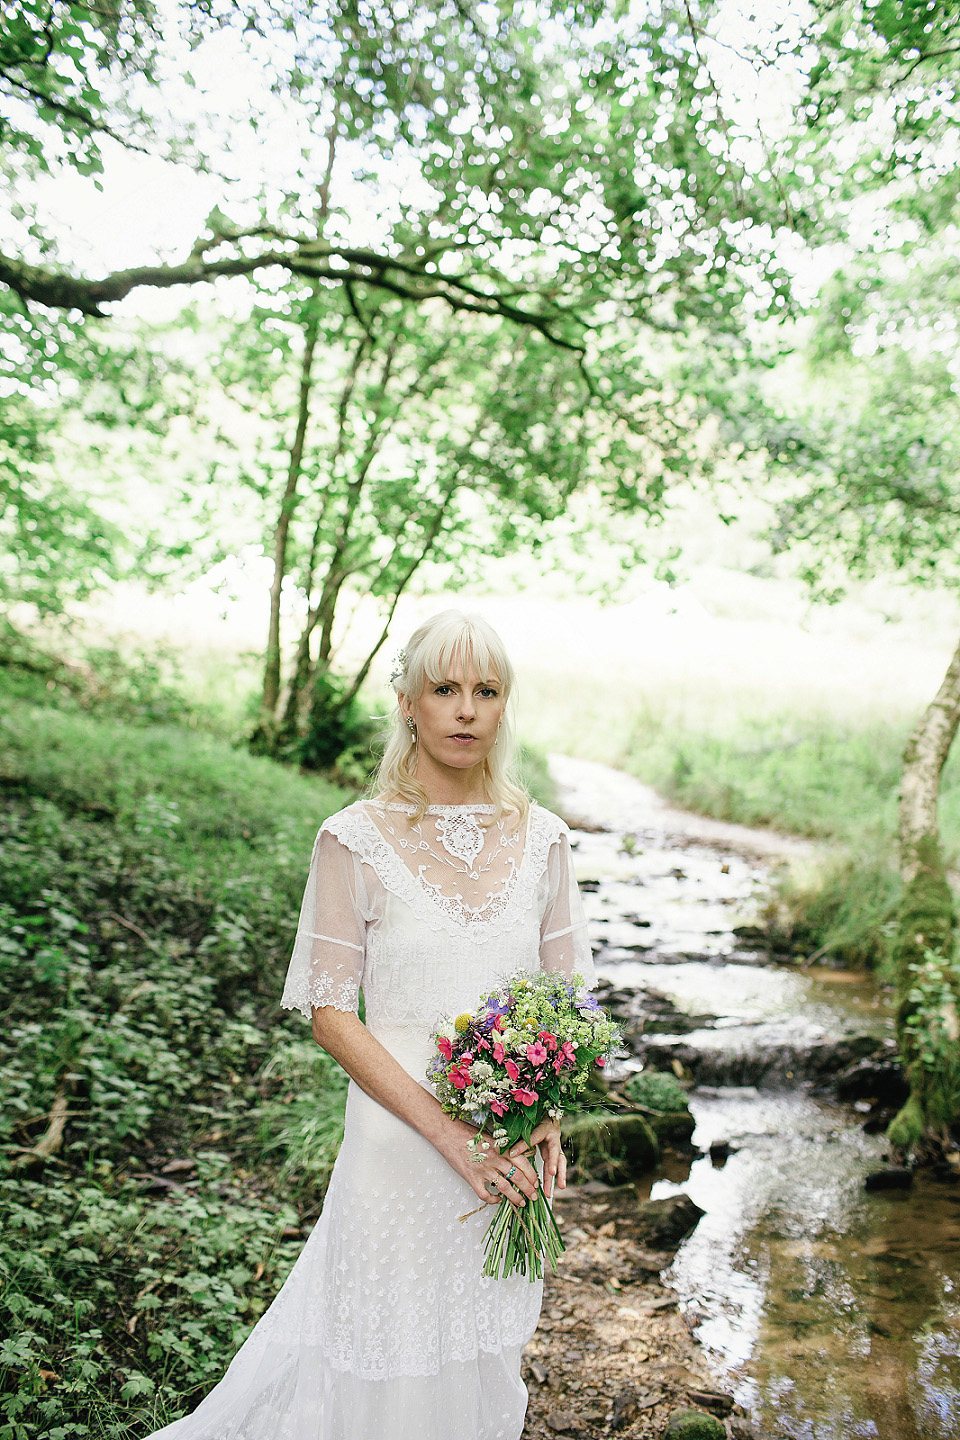 An Edwardian Wedding Dress for a Woodland Handfasting (Weddings )